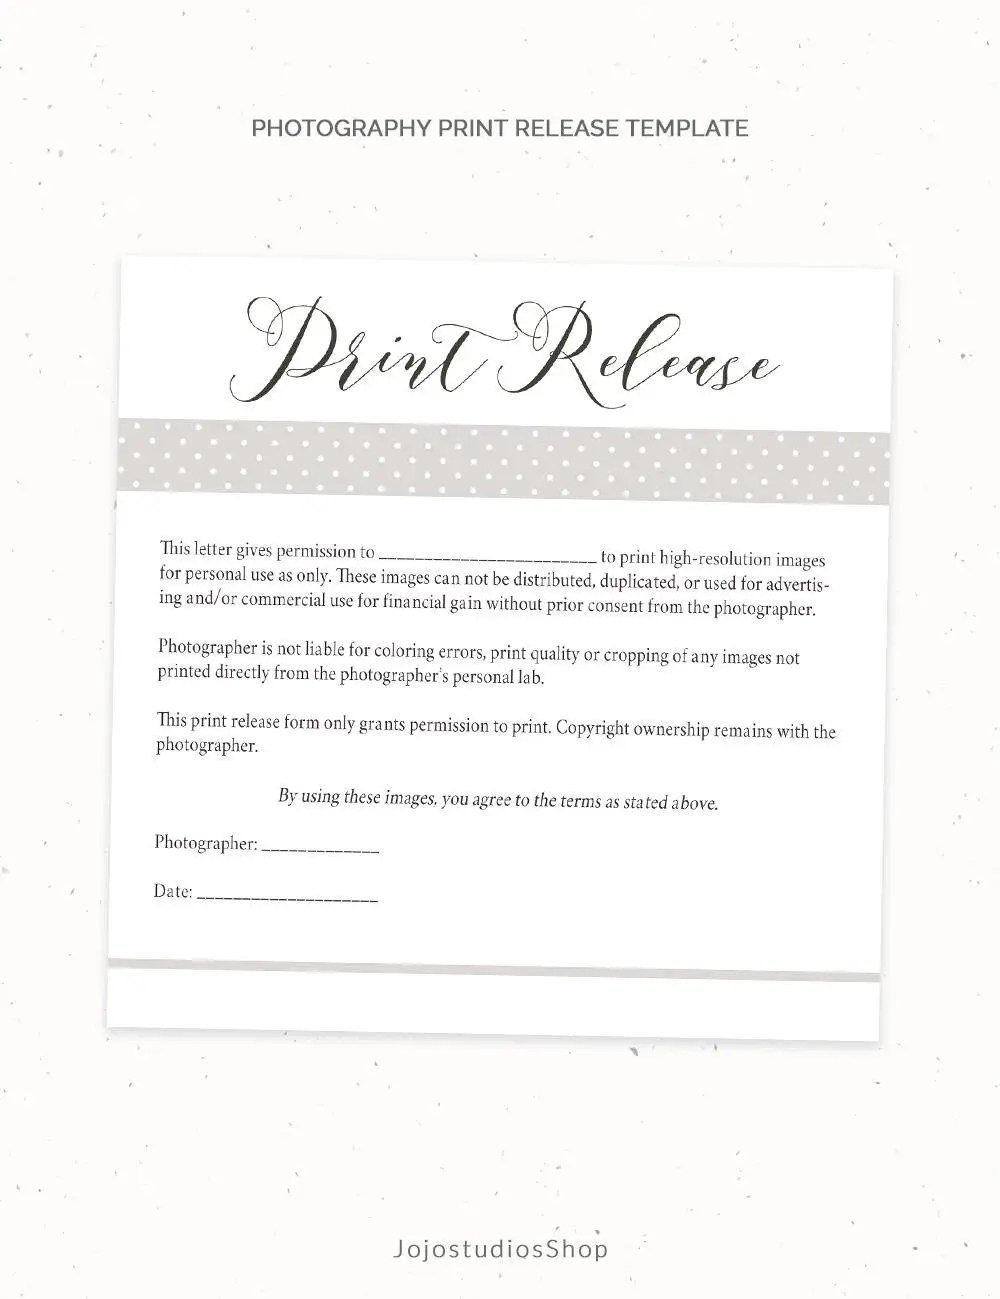 Photography Print Release Form Template Photography Template - financial release form